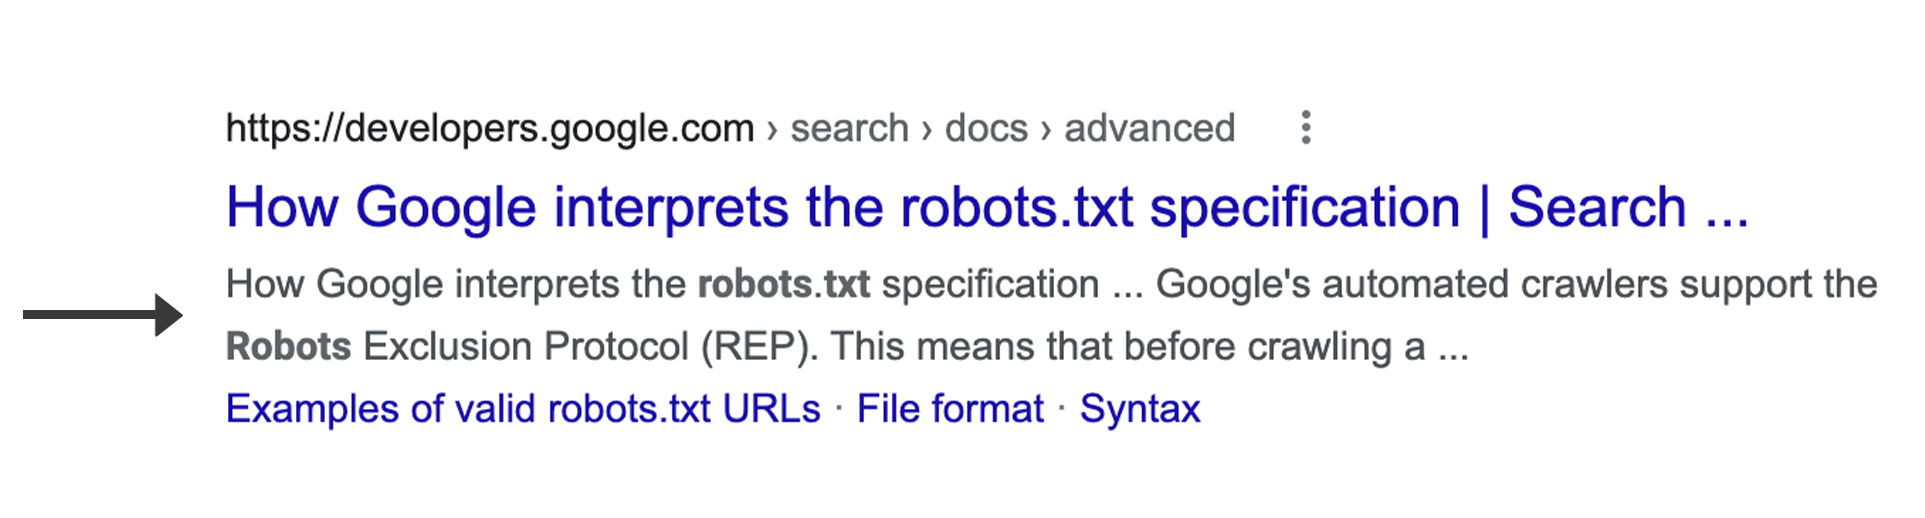 A snippet in a web result in Google Search